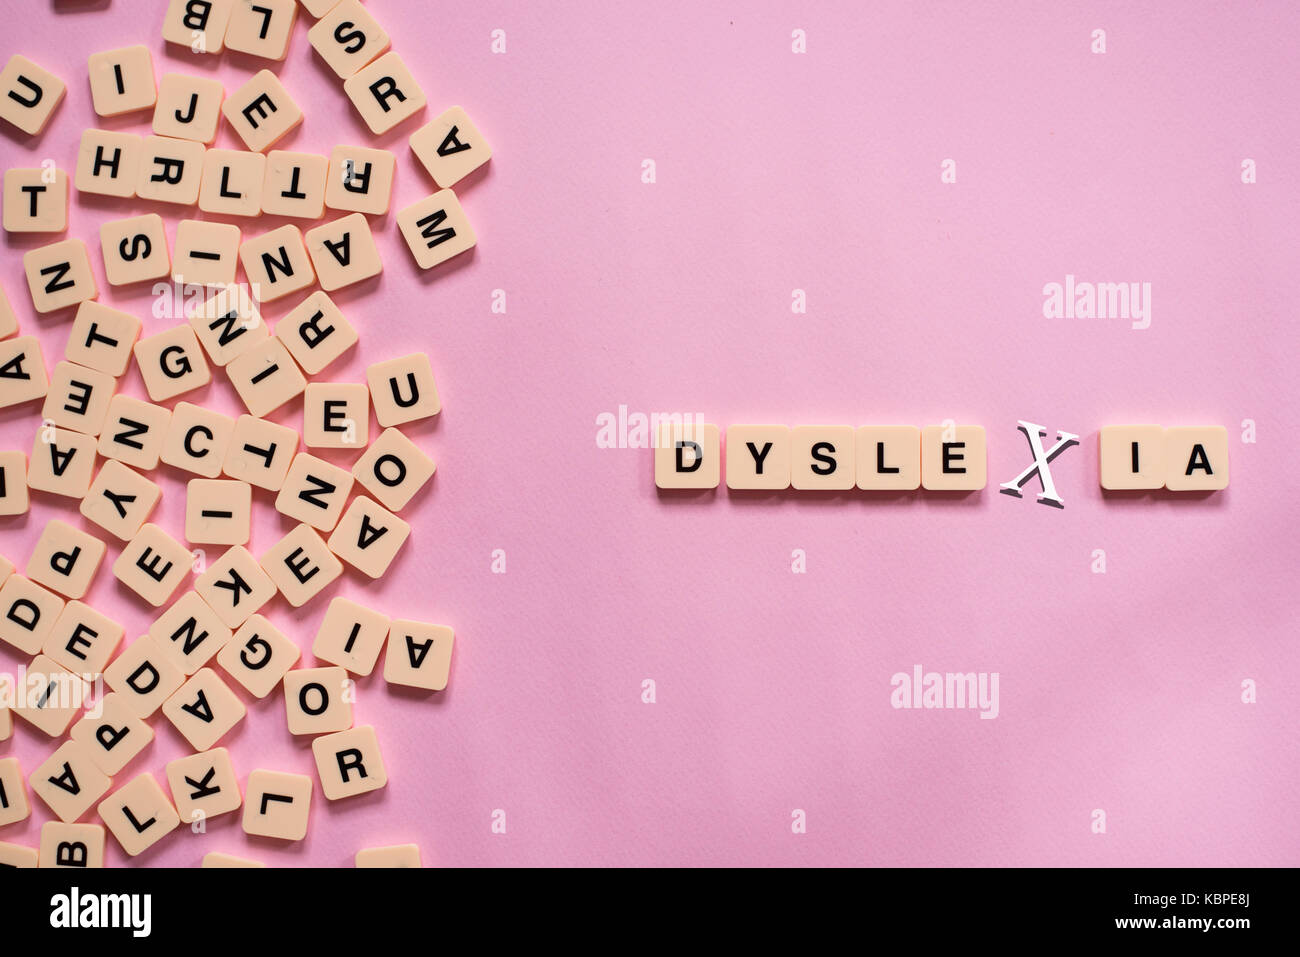 dyslexia concept - alphabet letters on pink background - Stock Image